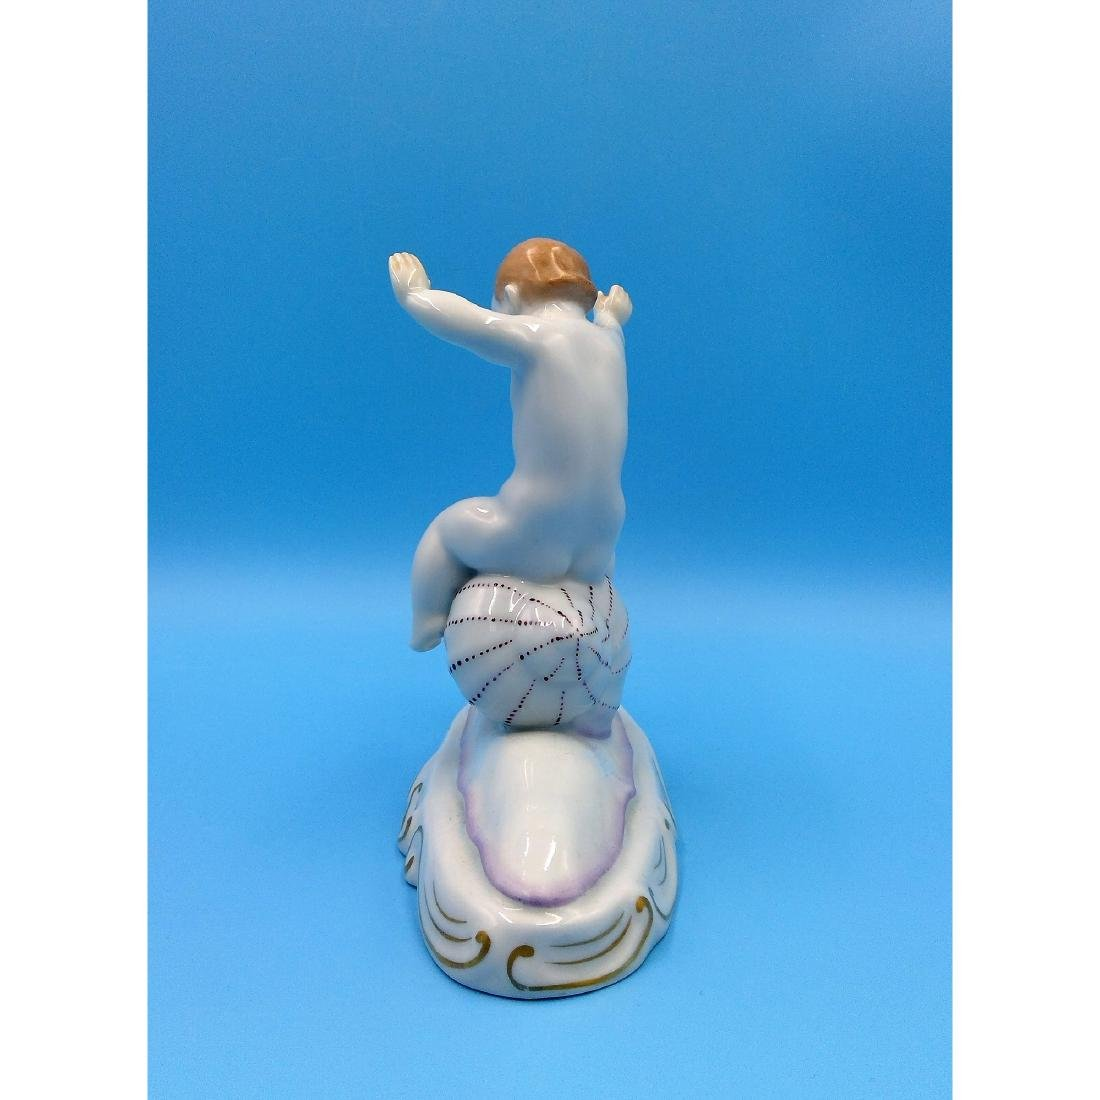 HEREND HUNGARIAN PORCELAIN FIGURINE BOY - 2